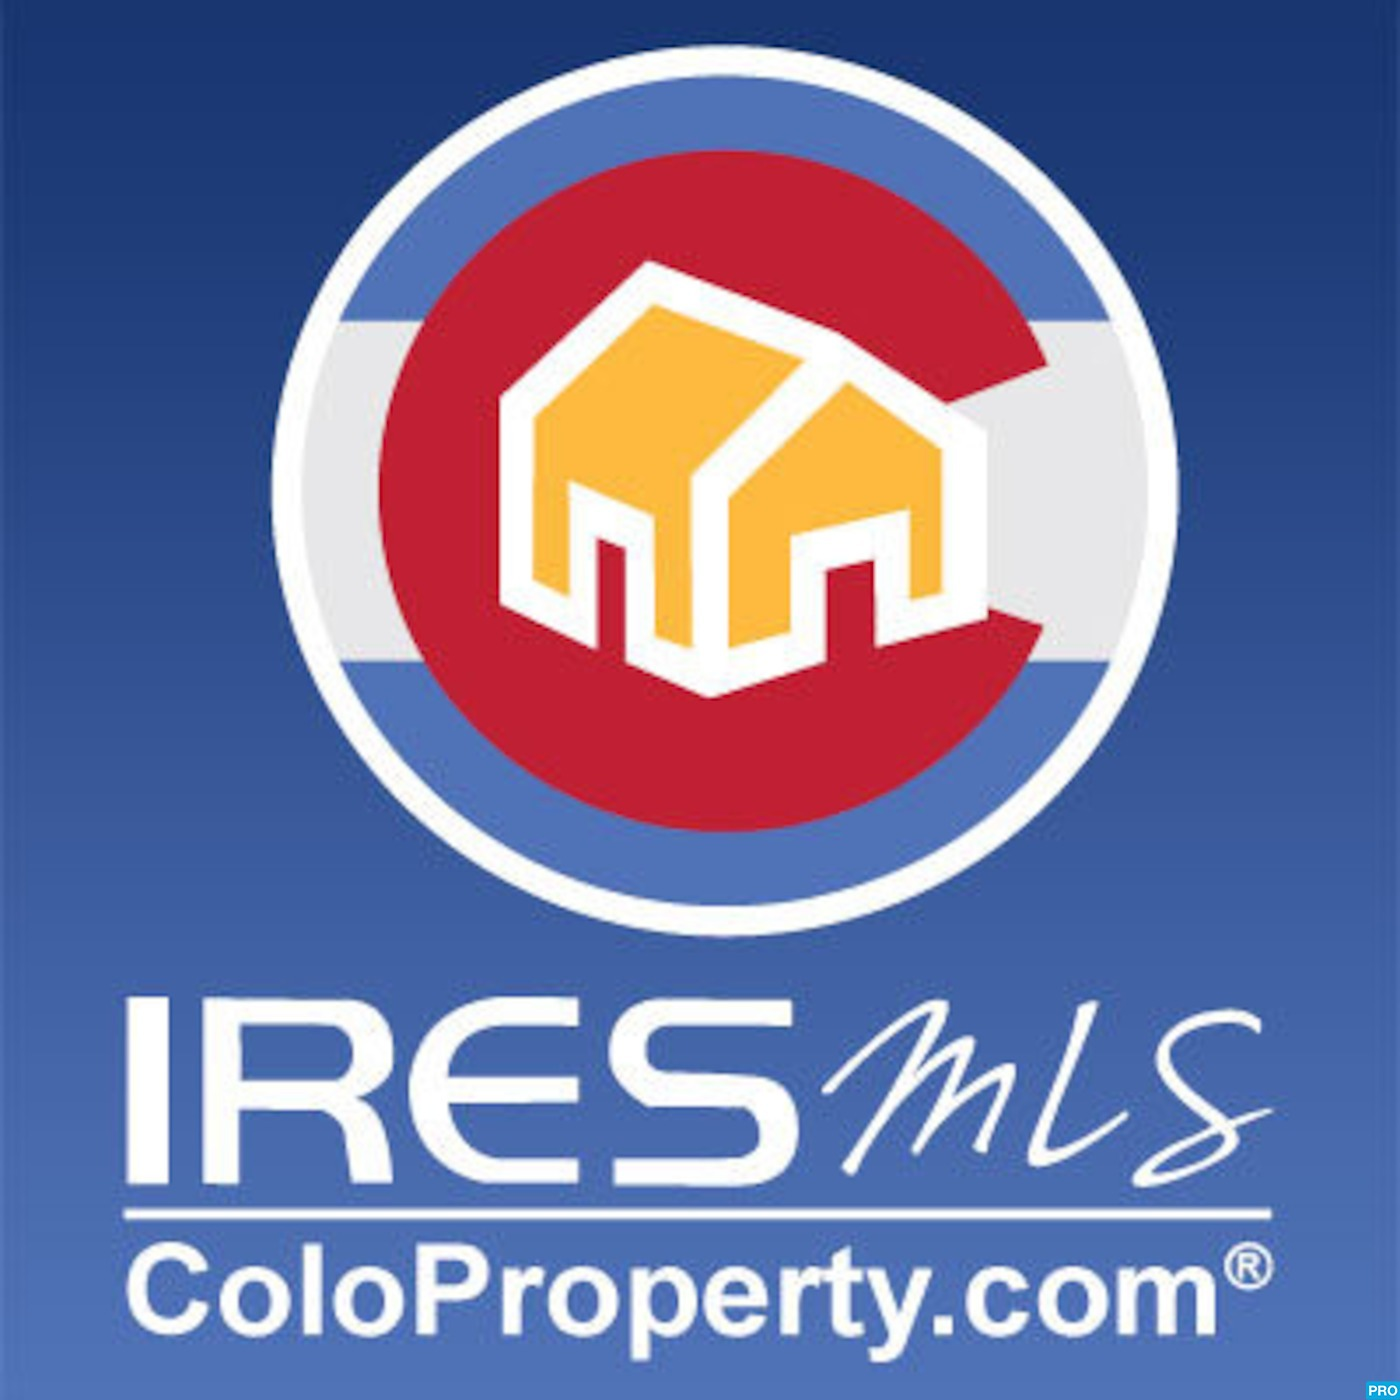 IRES MLS Podcast